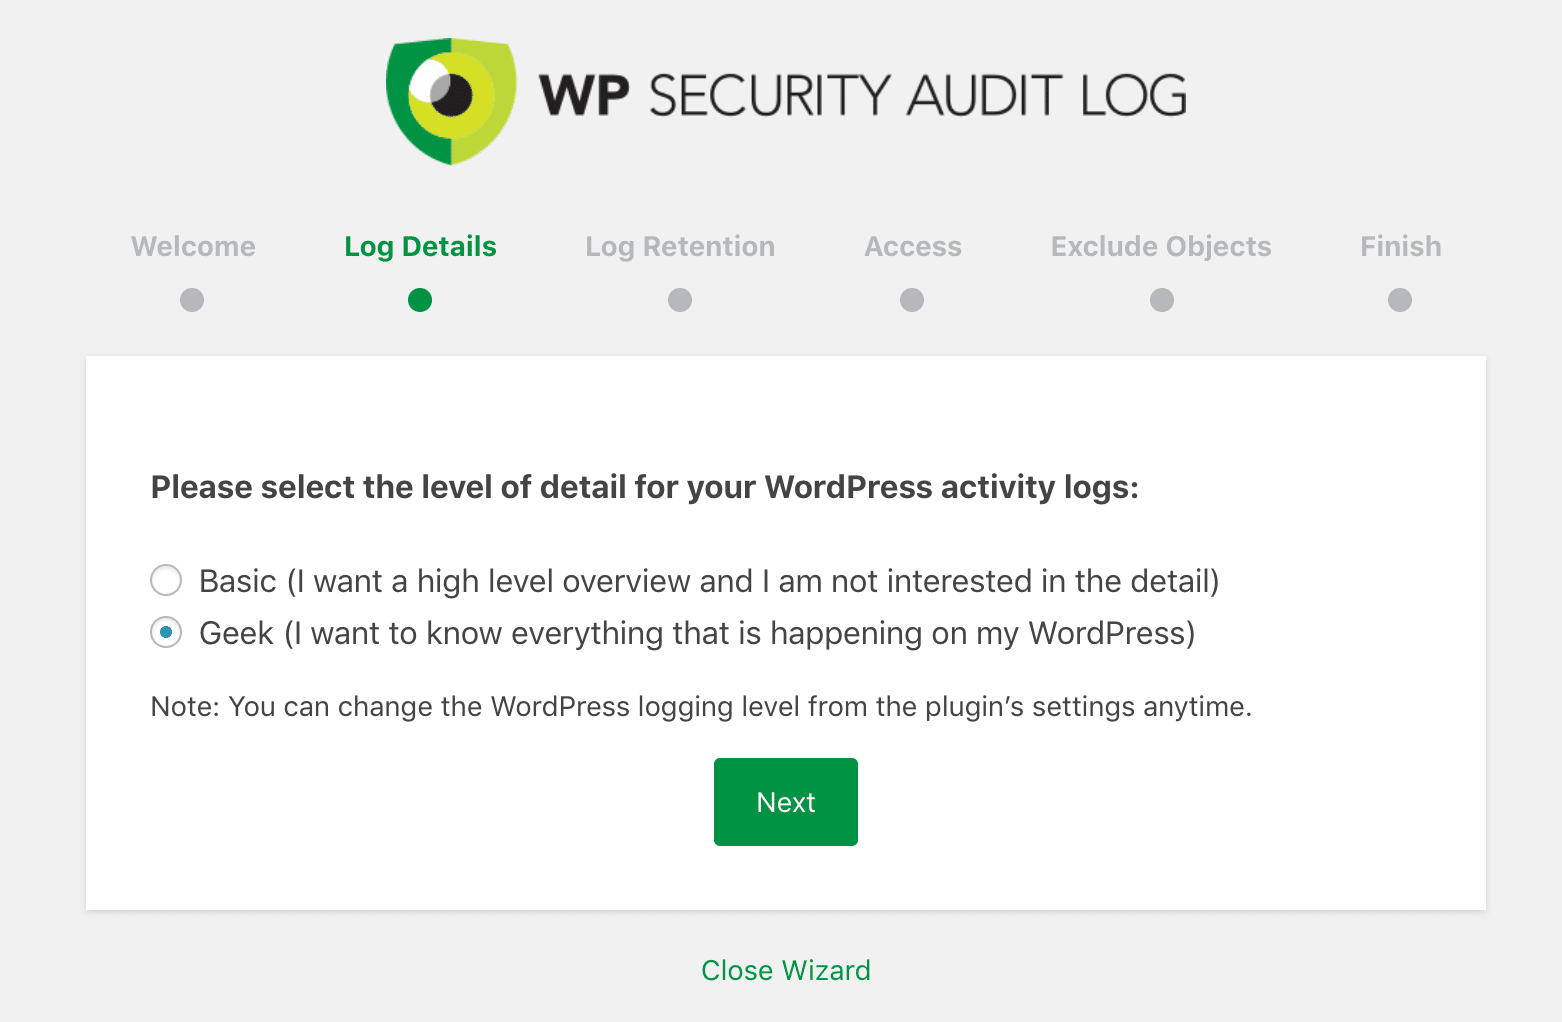 WP Security Audit Log geek settings